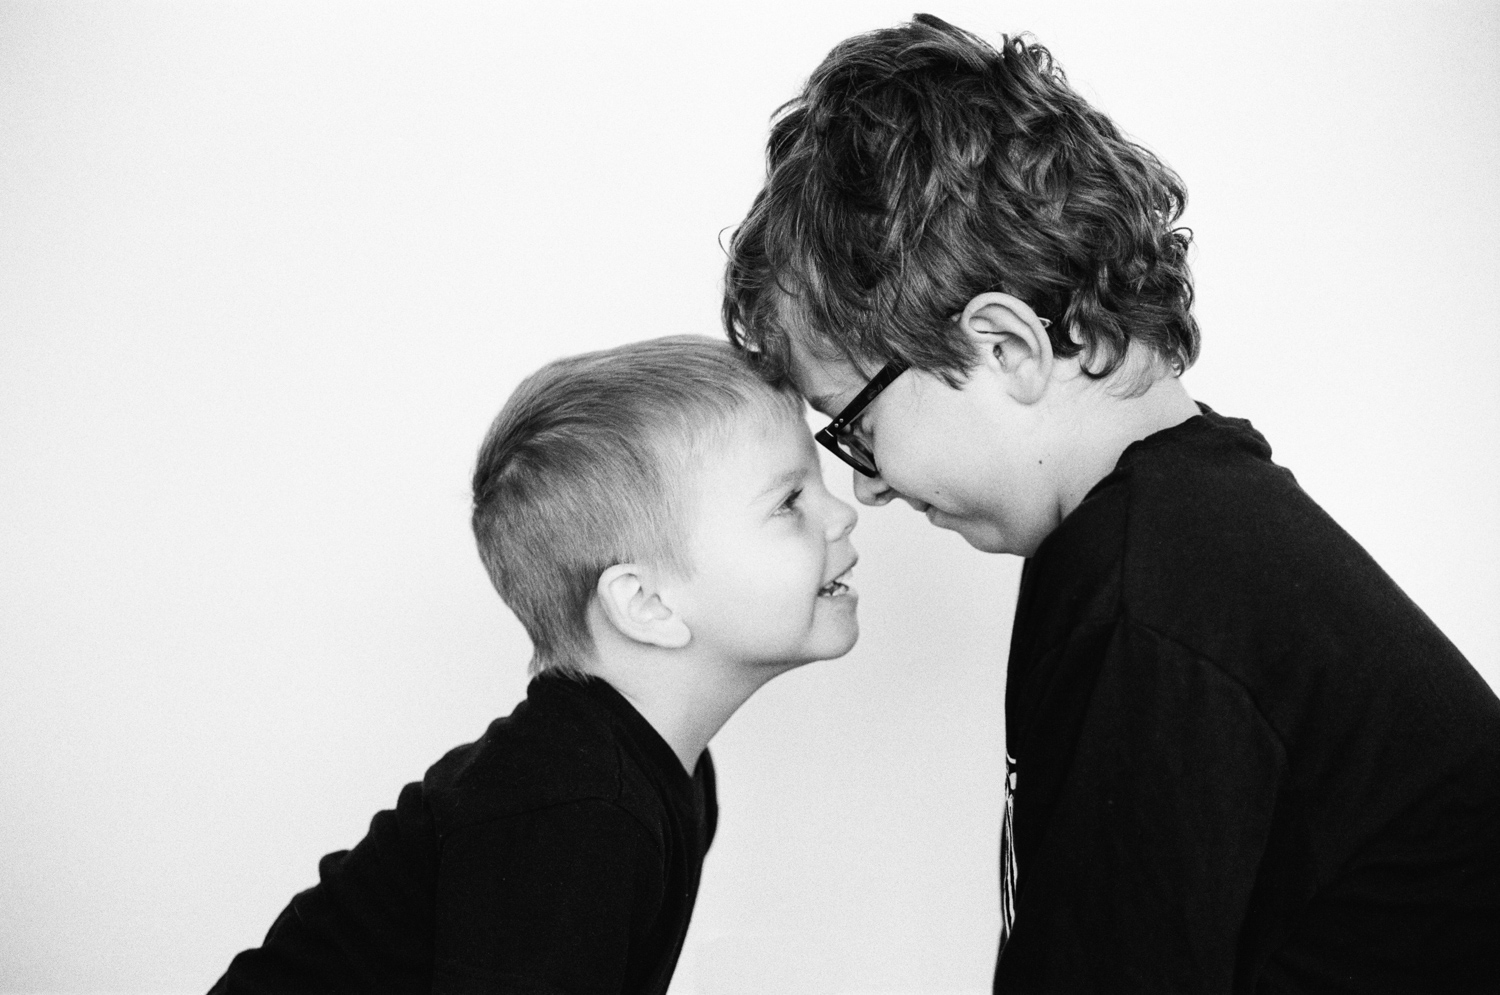 Portrait of two boys touching foreheads smiling